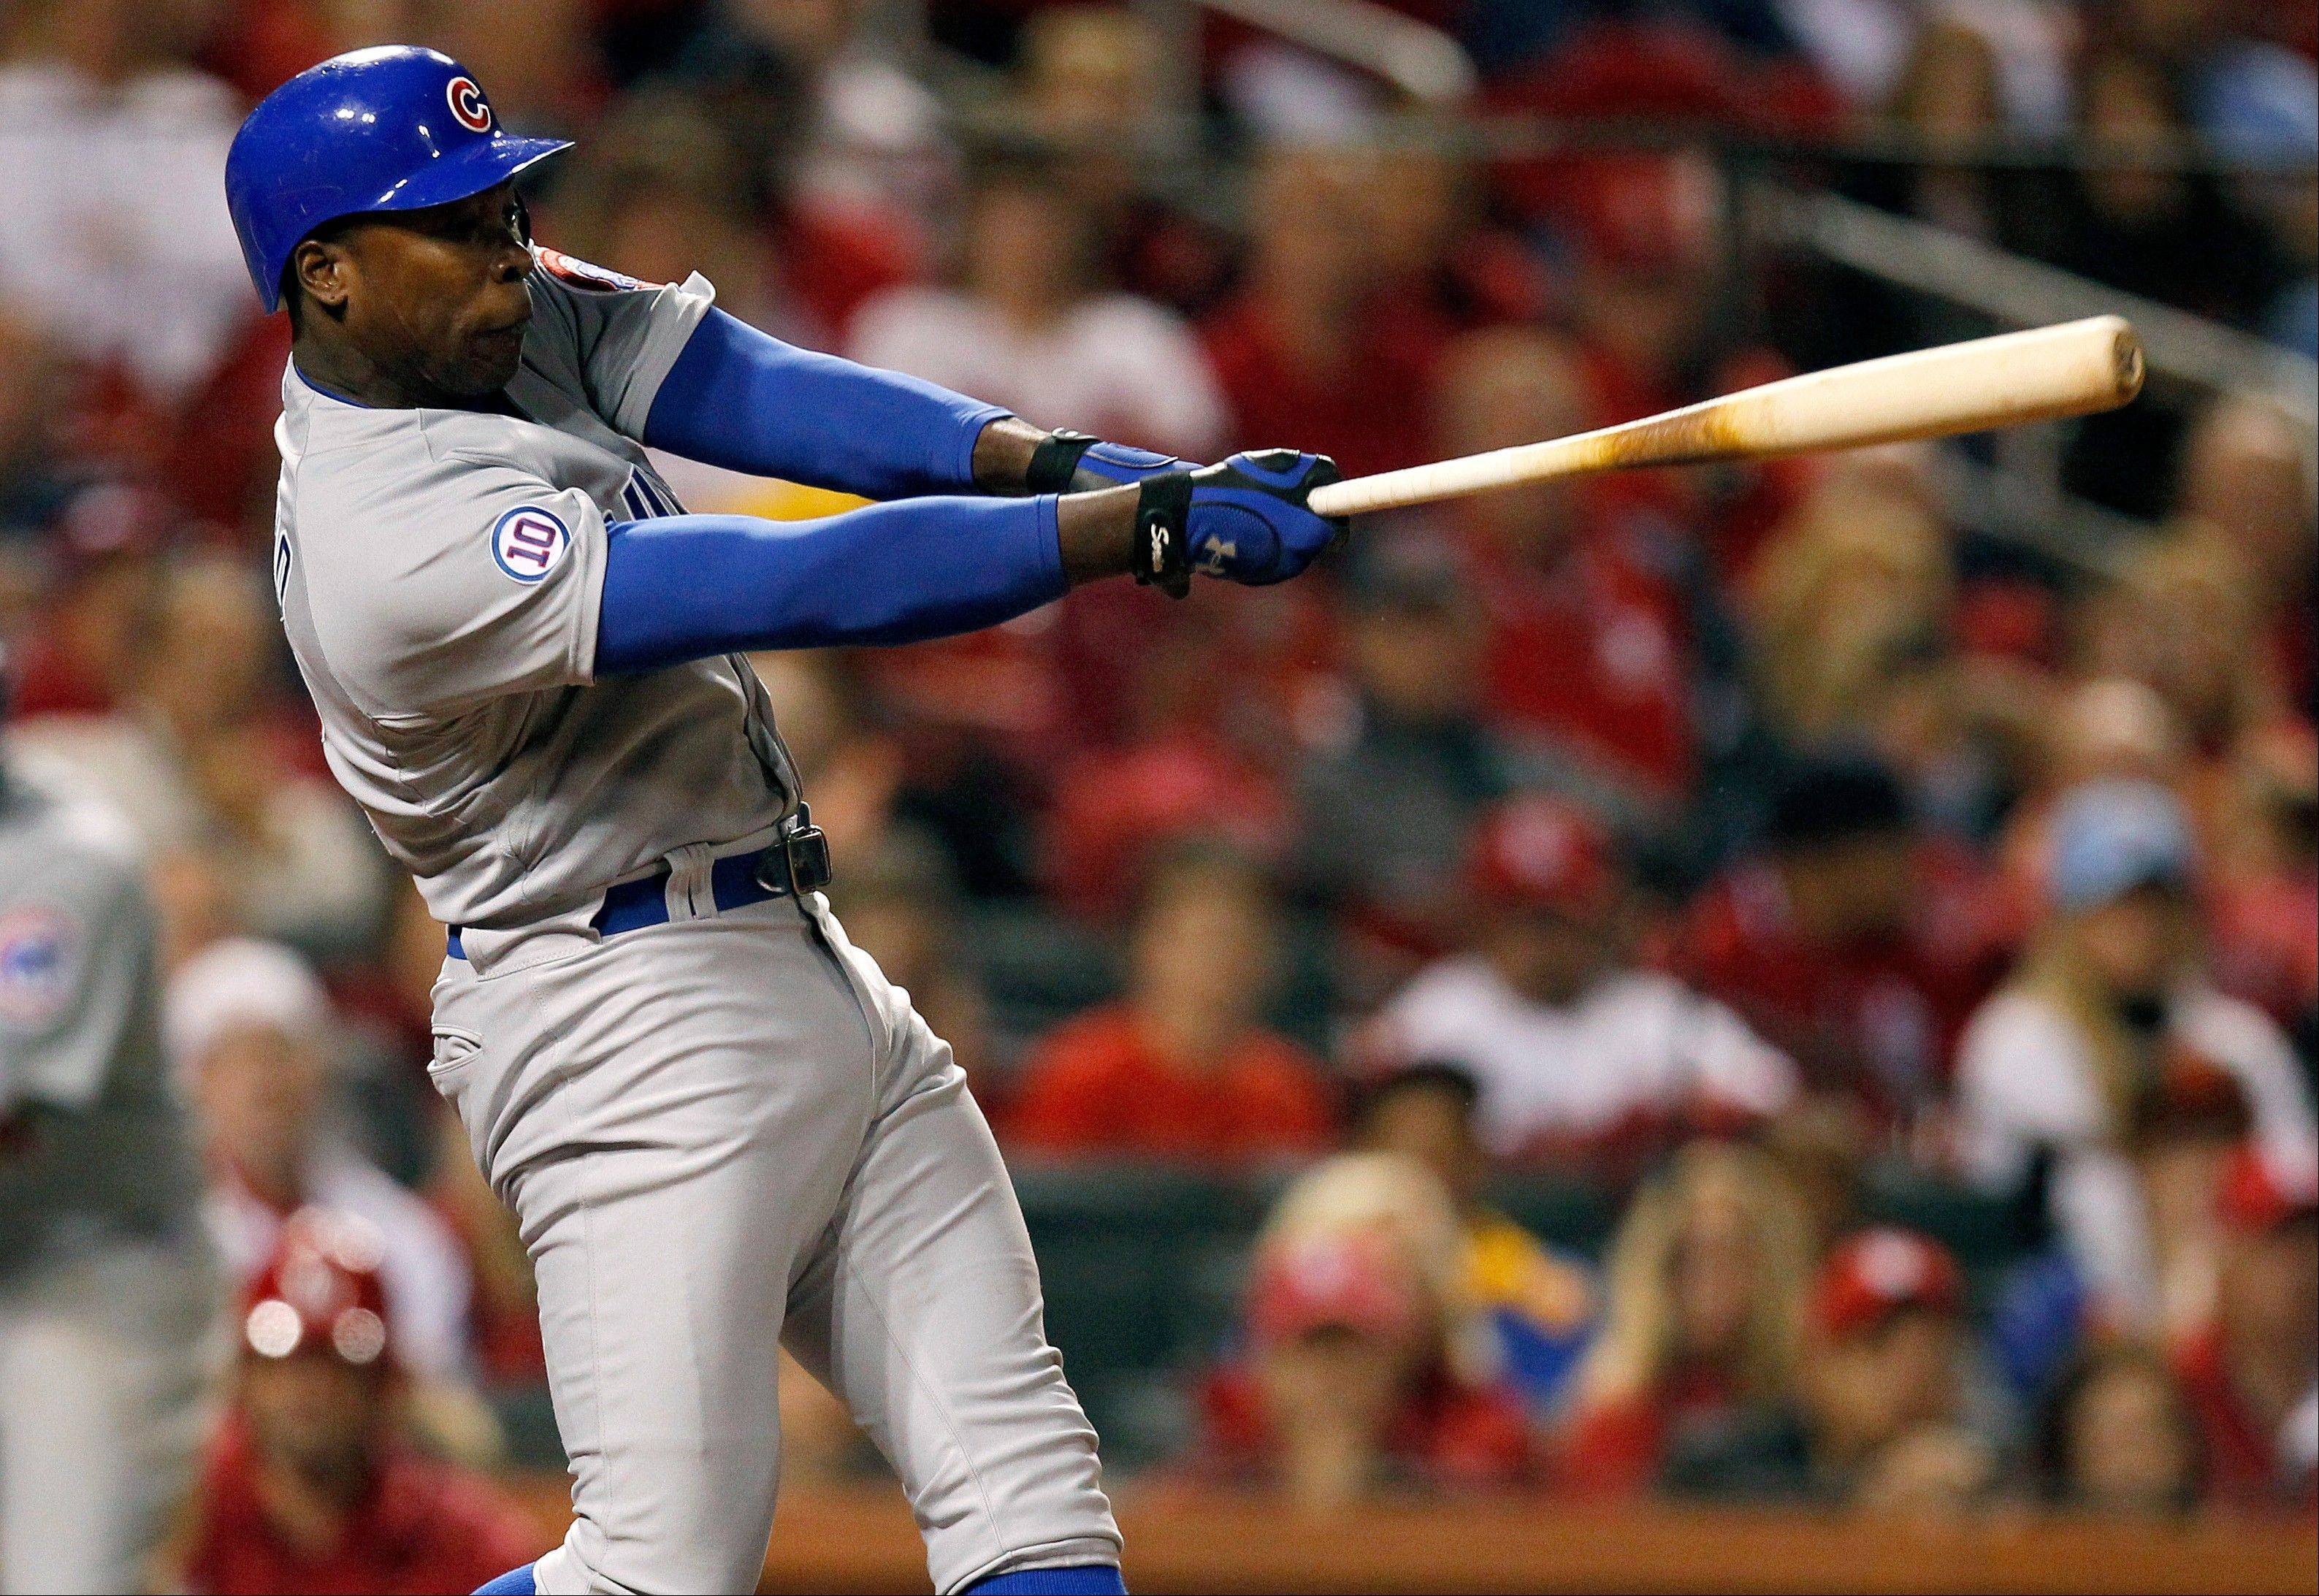 Alfonso Soriano�s 3-run shot was the difference as the Cubs dealt another blow to the fading St. Louis Cardinals� playoff hopes. The Cubs topped the Cards 5-1 in St. Louis Friday night.